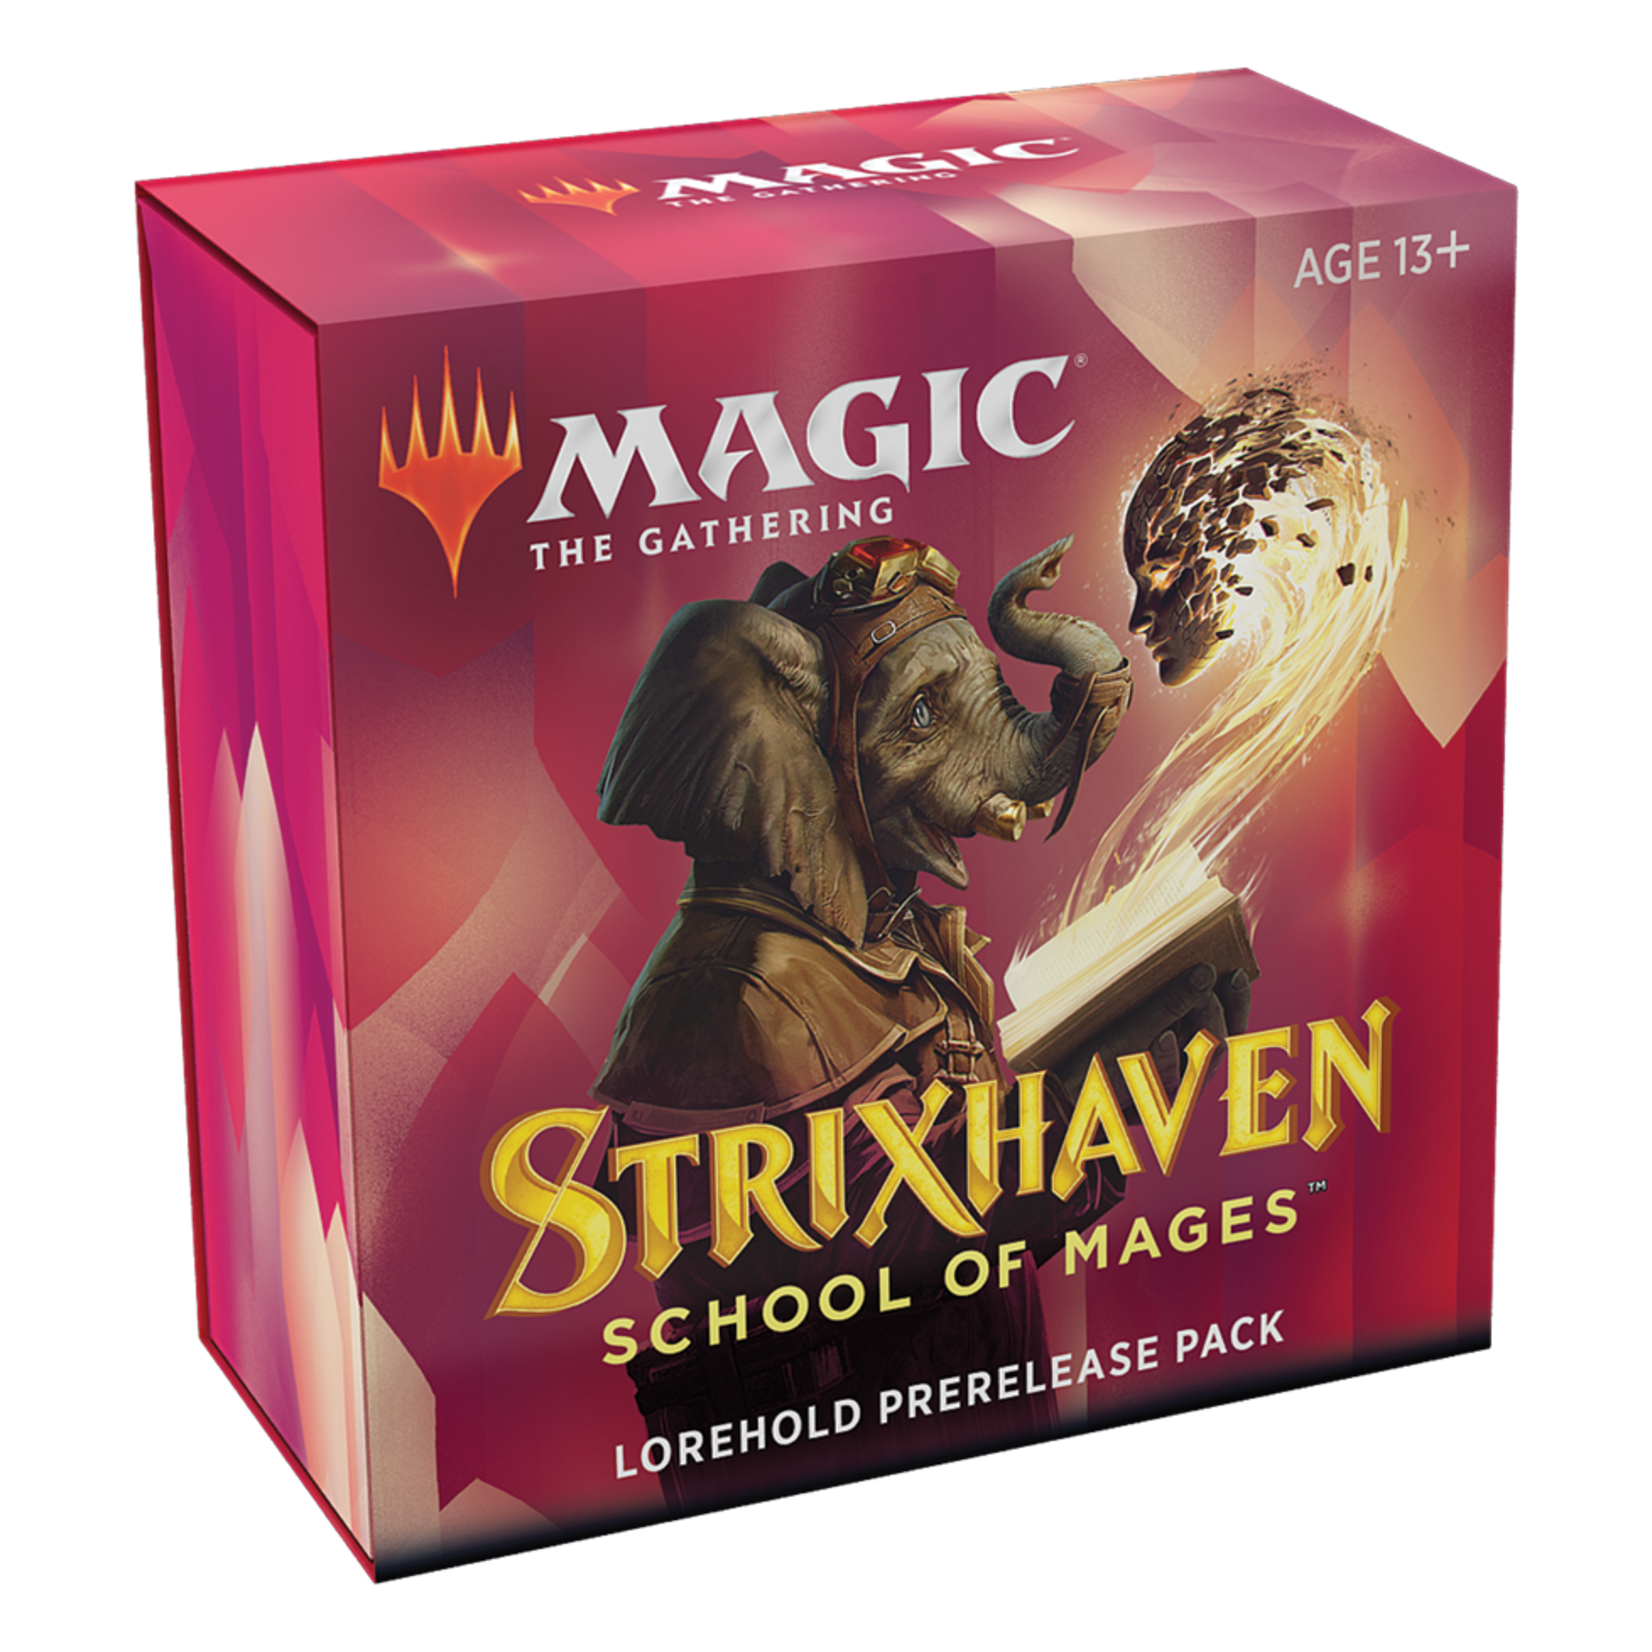 Wizards of the Coast Strixhaven Prerelease Pack